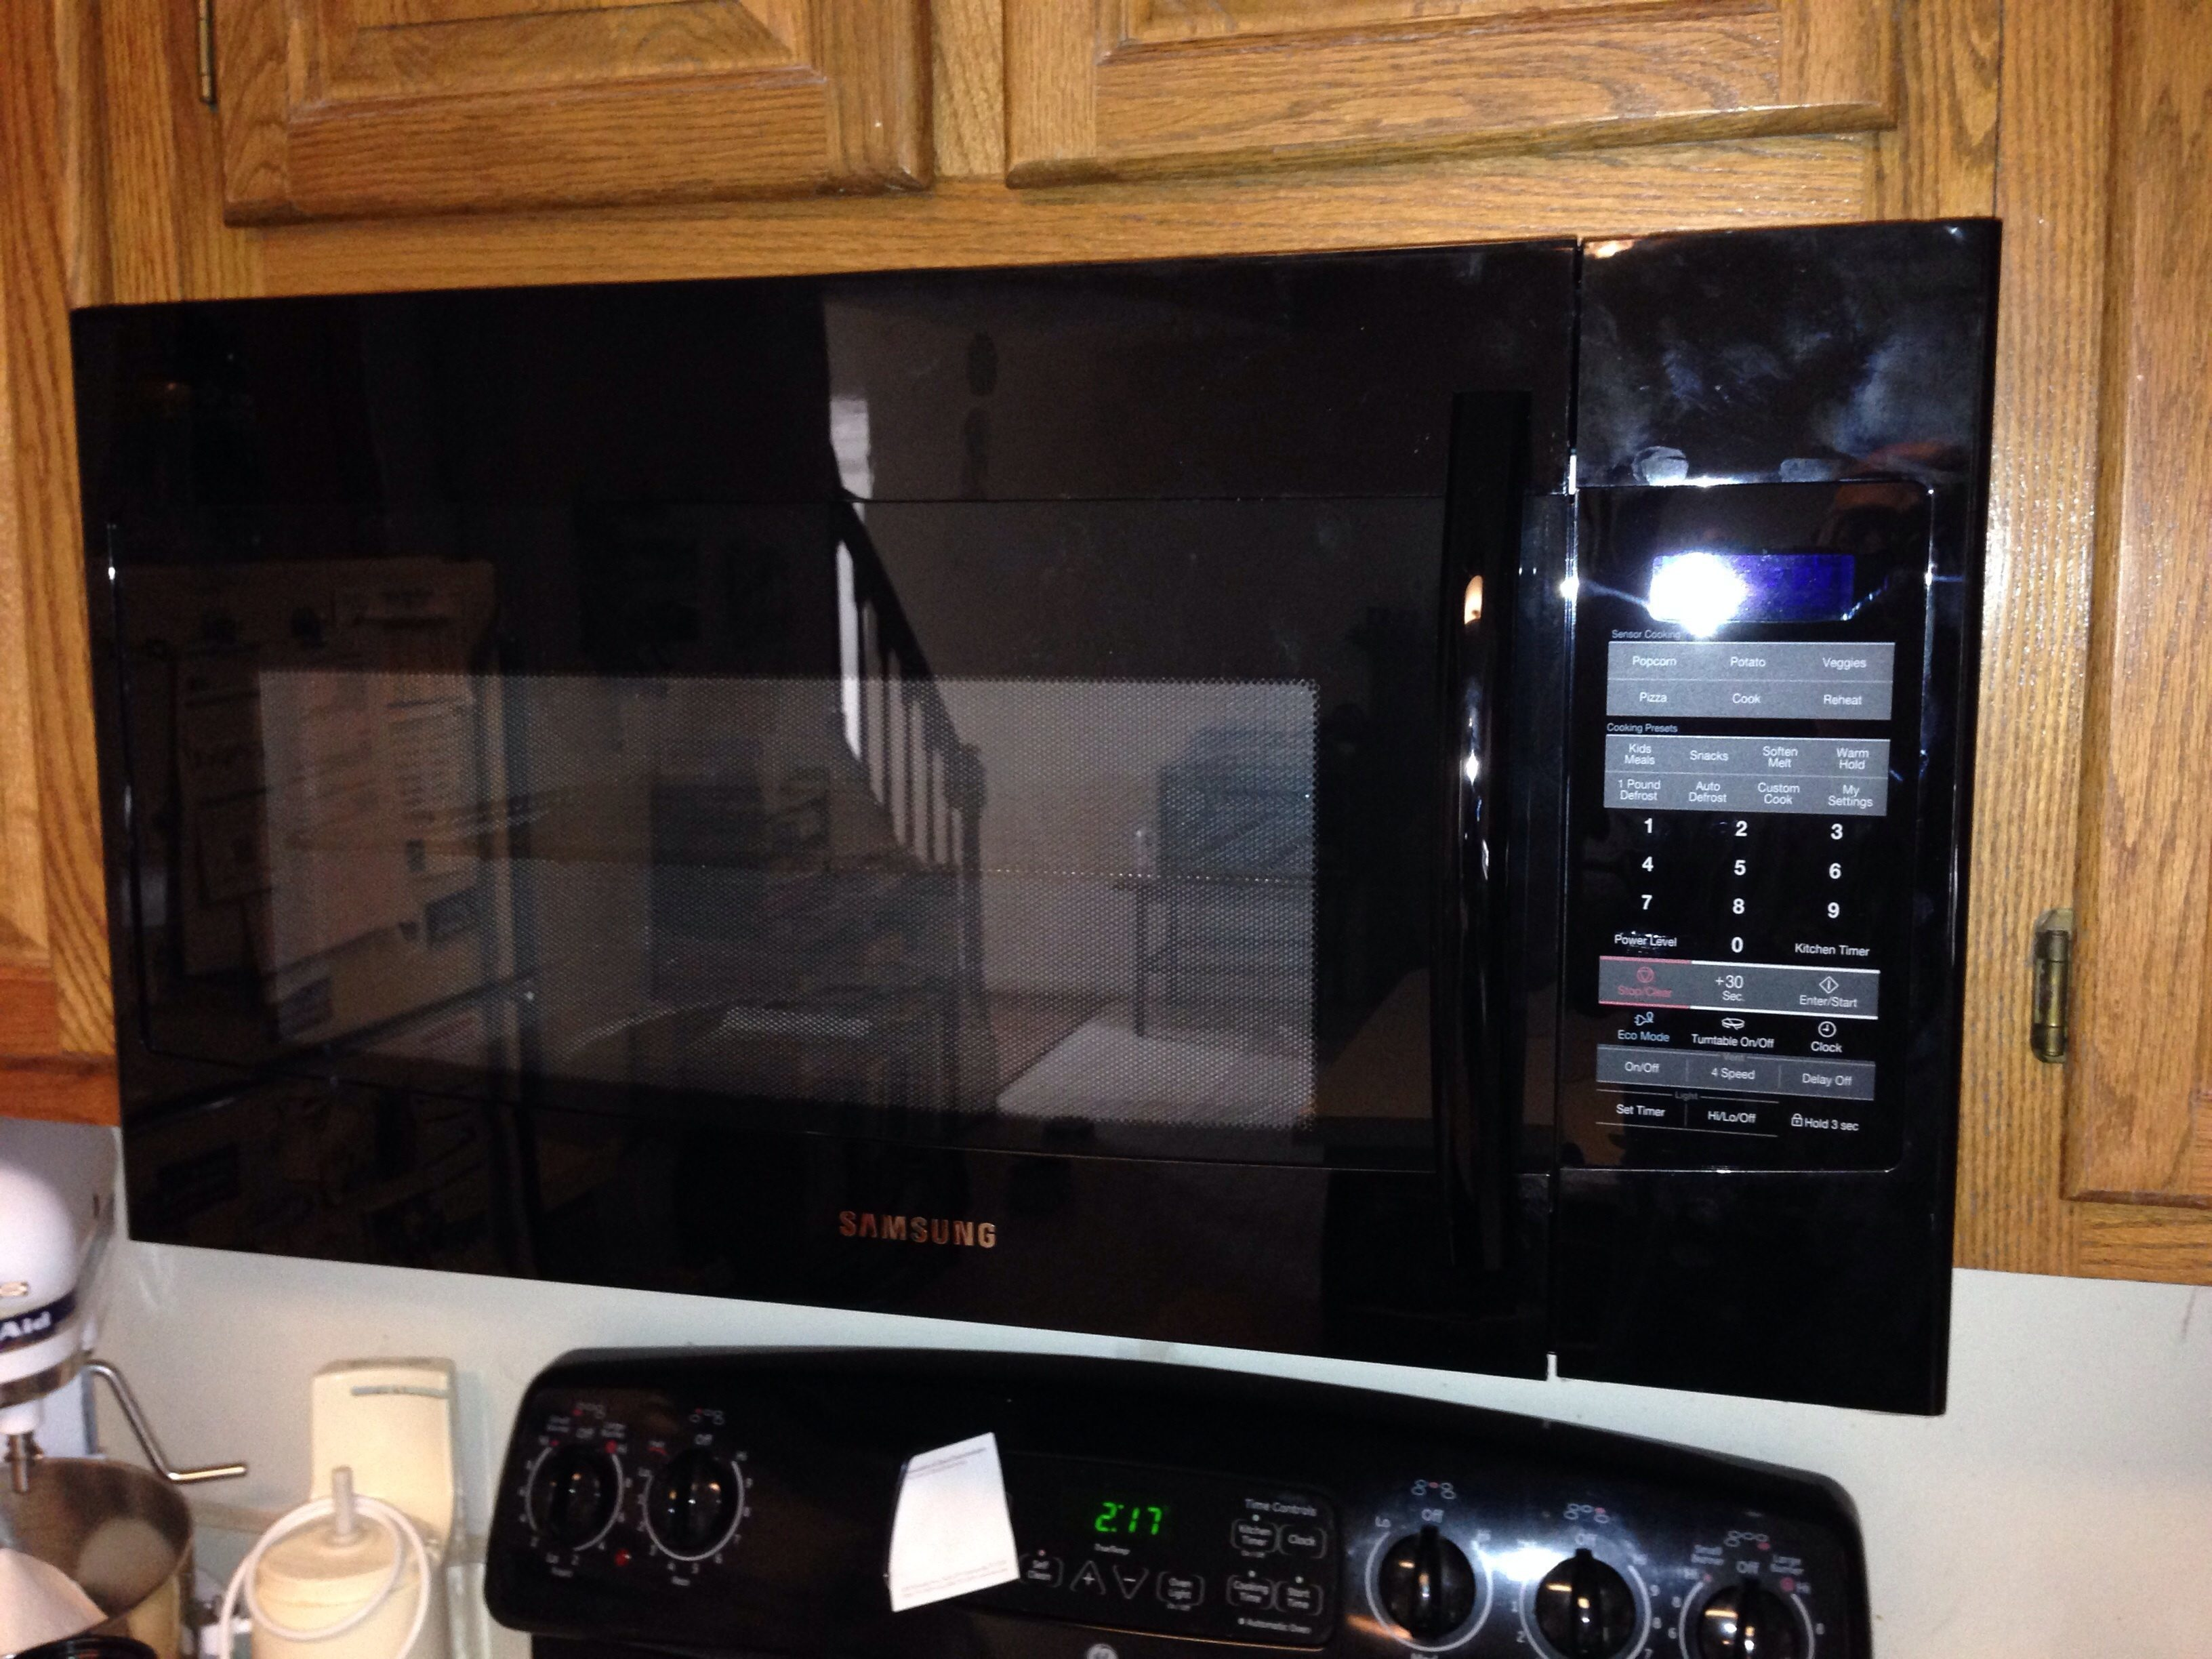 Had A Brand New Manufactured August 2017 Samsung Smh1816b Otr Microwave Oven Installed On 10 05 As Soon The Installer Plugged It In For First